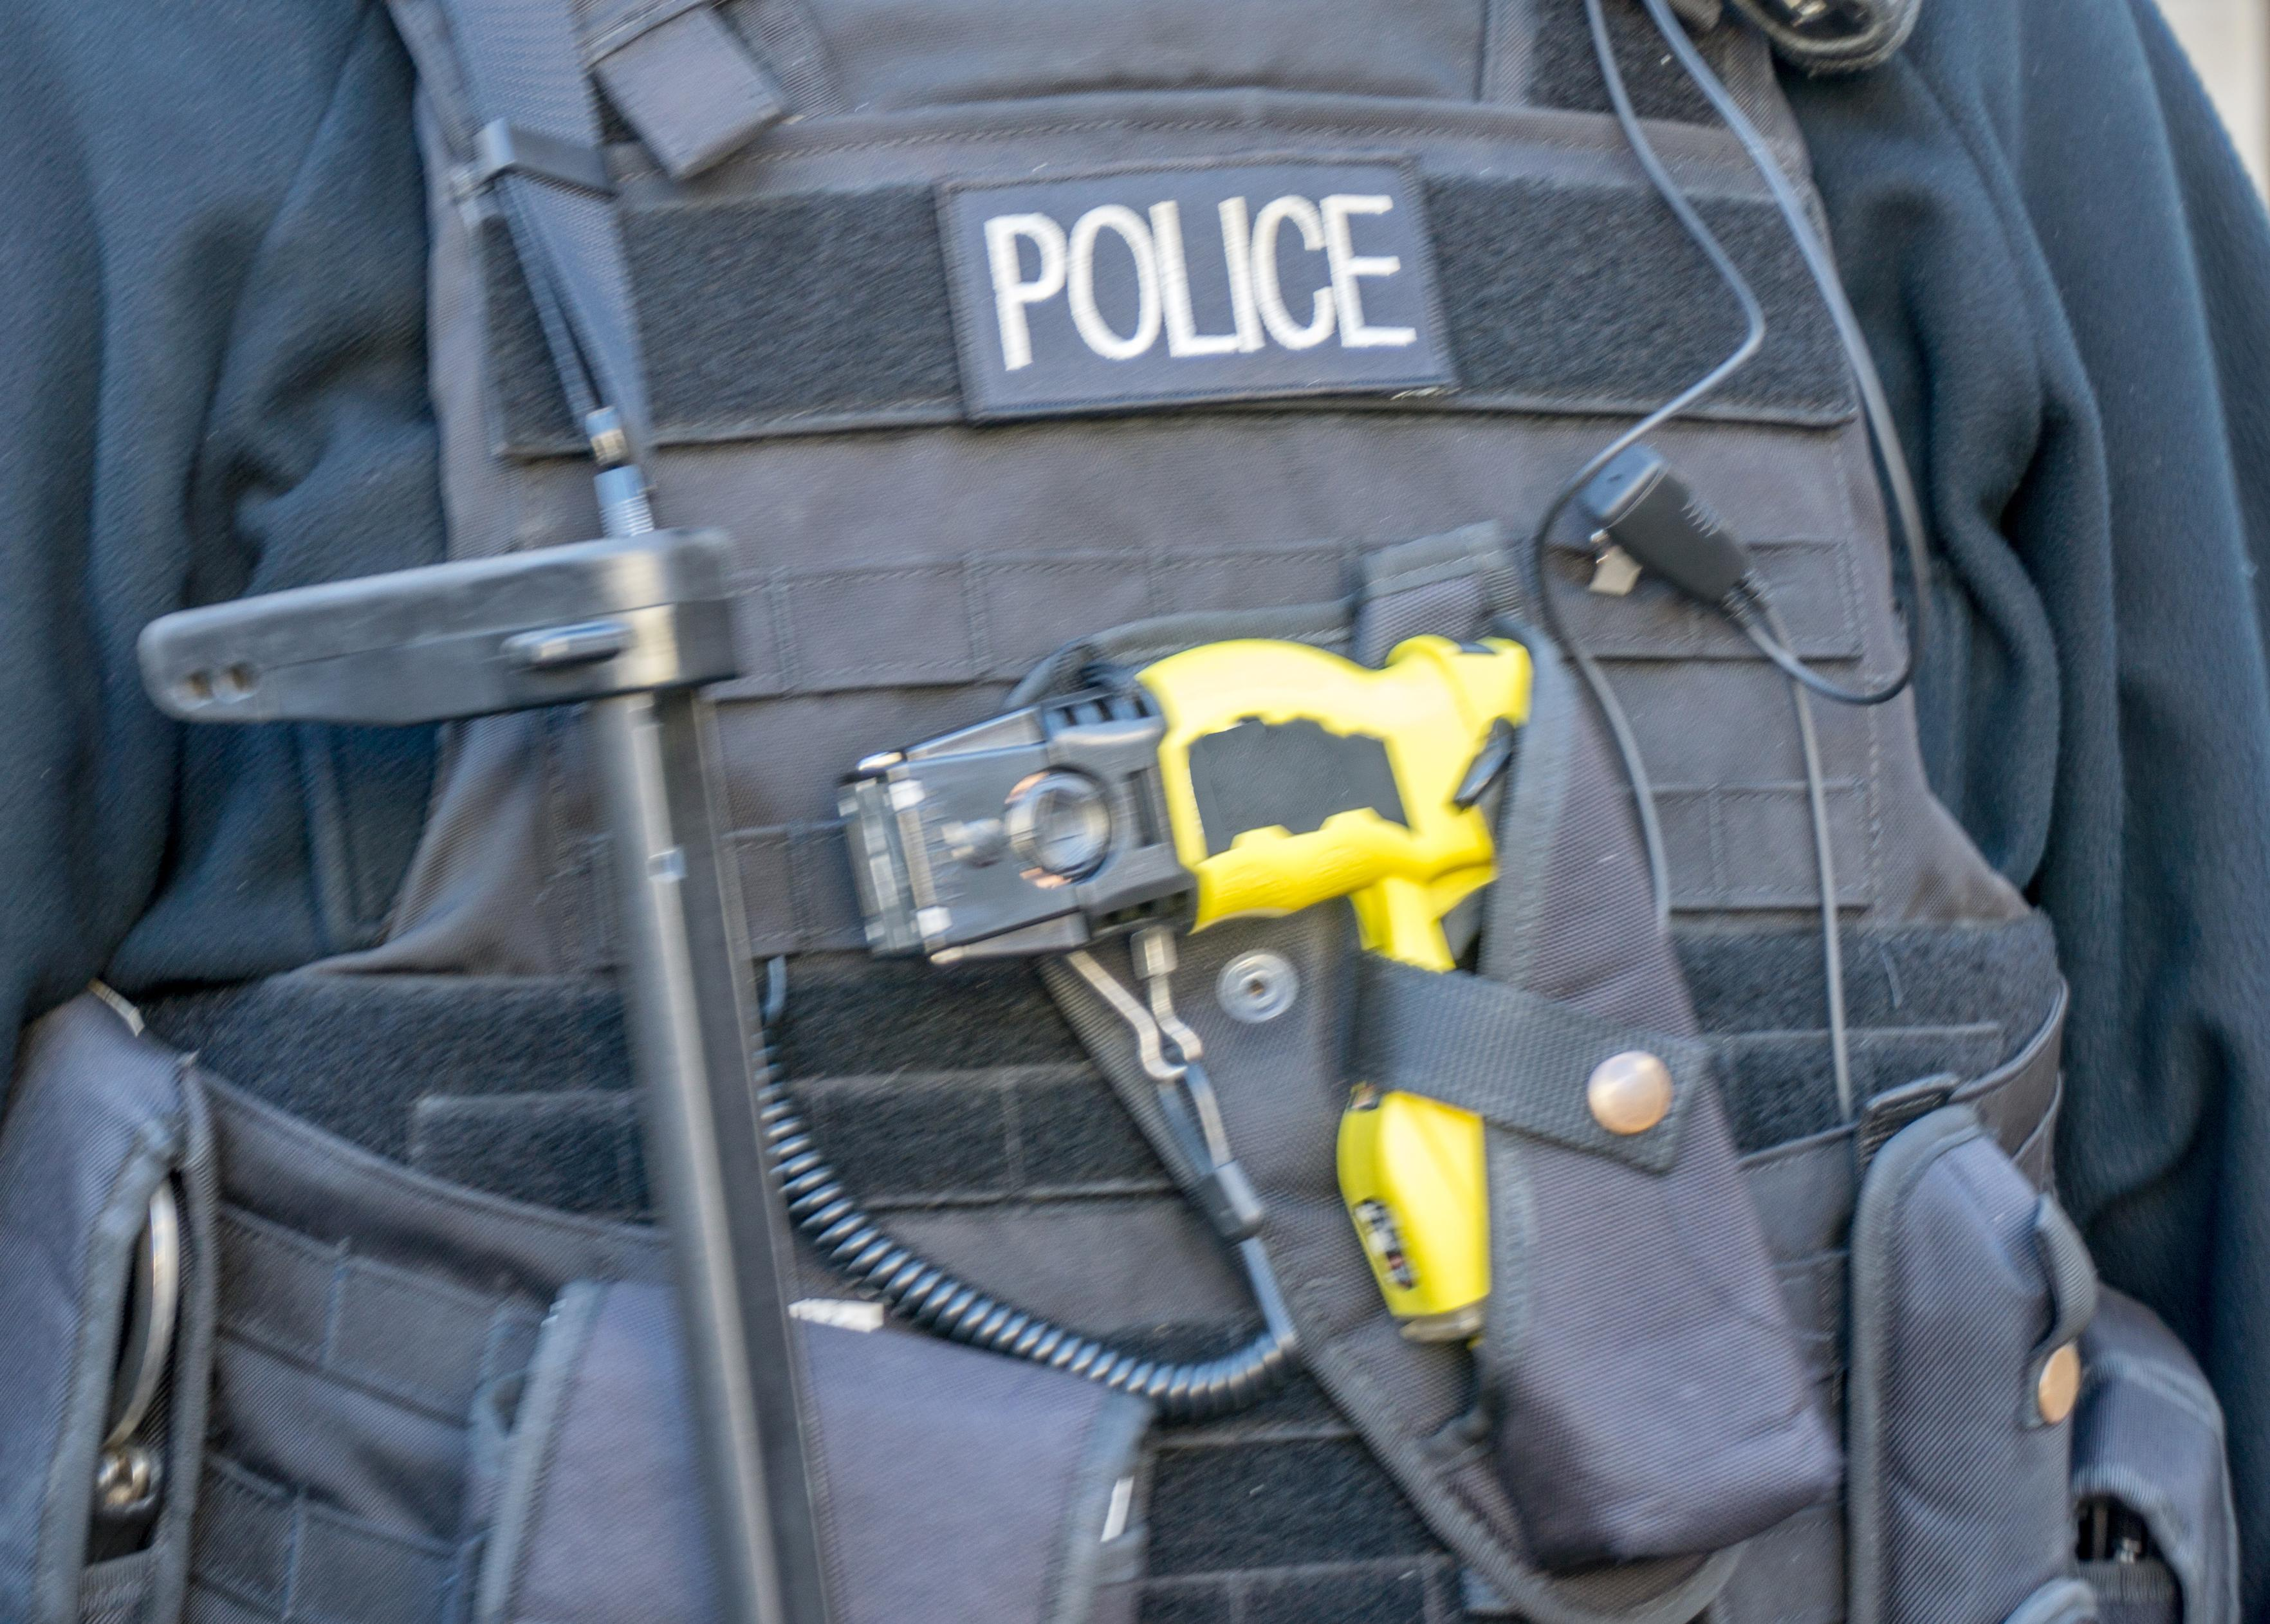 15 People Have Caught Fire and 5 Have Died After Being Tasered Near Flammable Materials